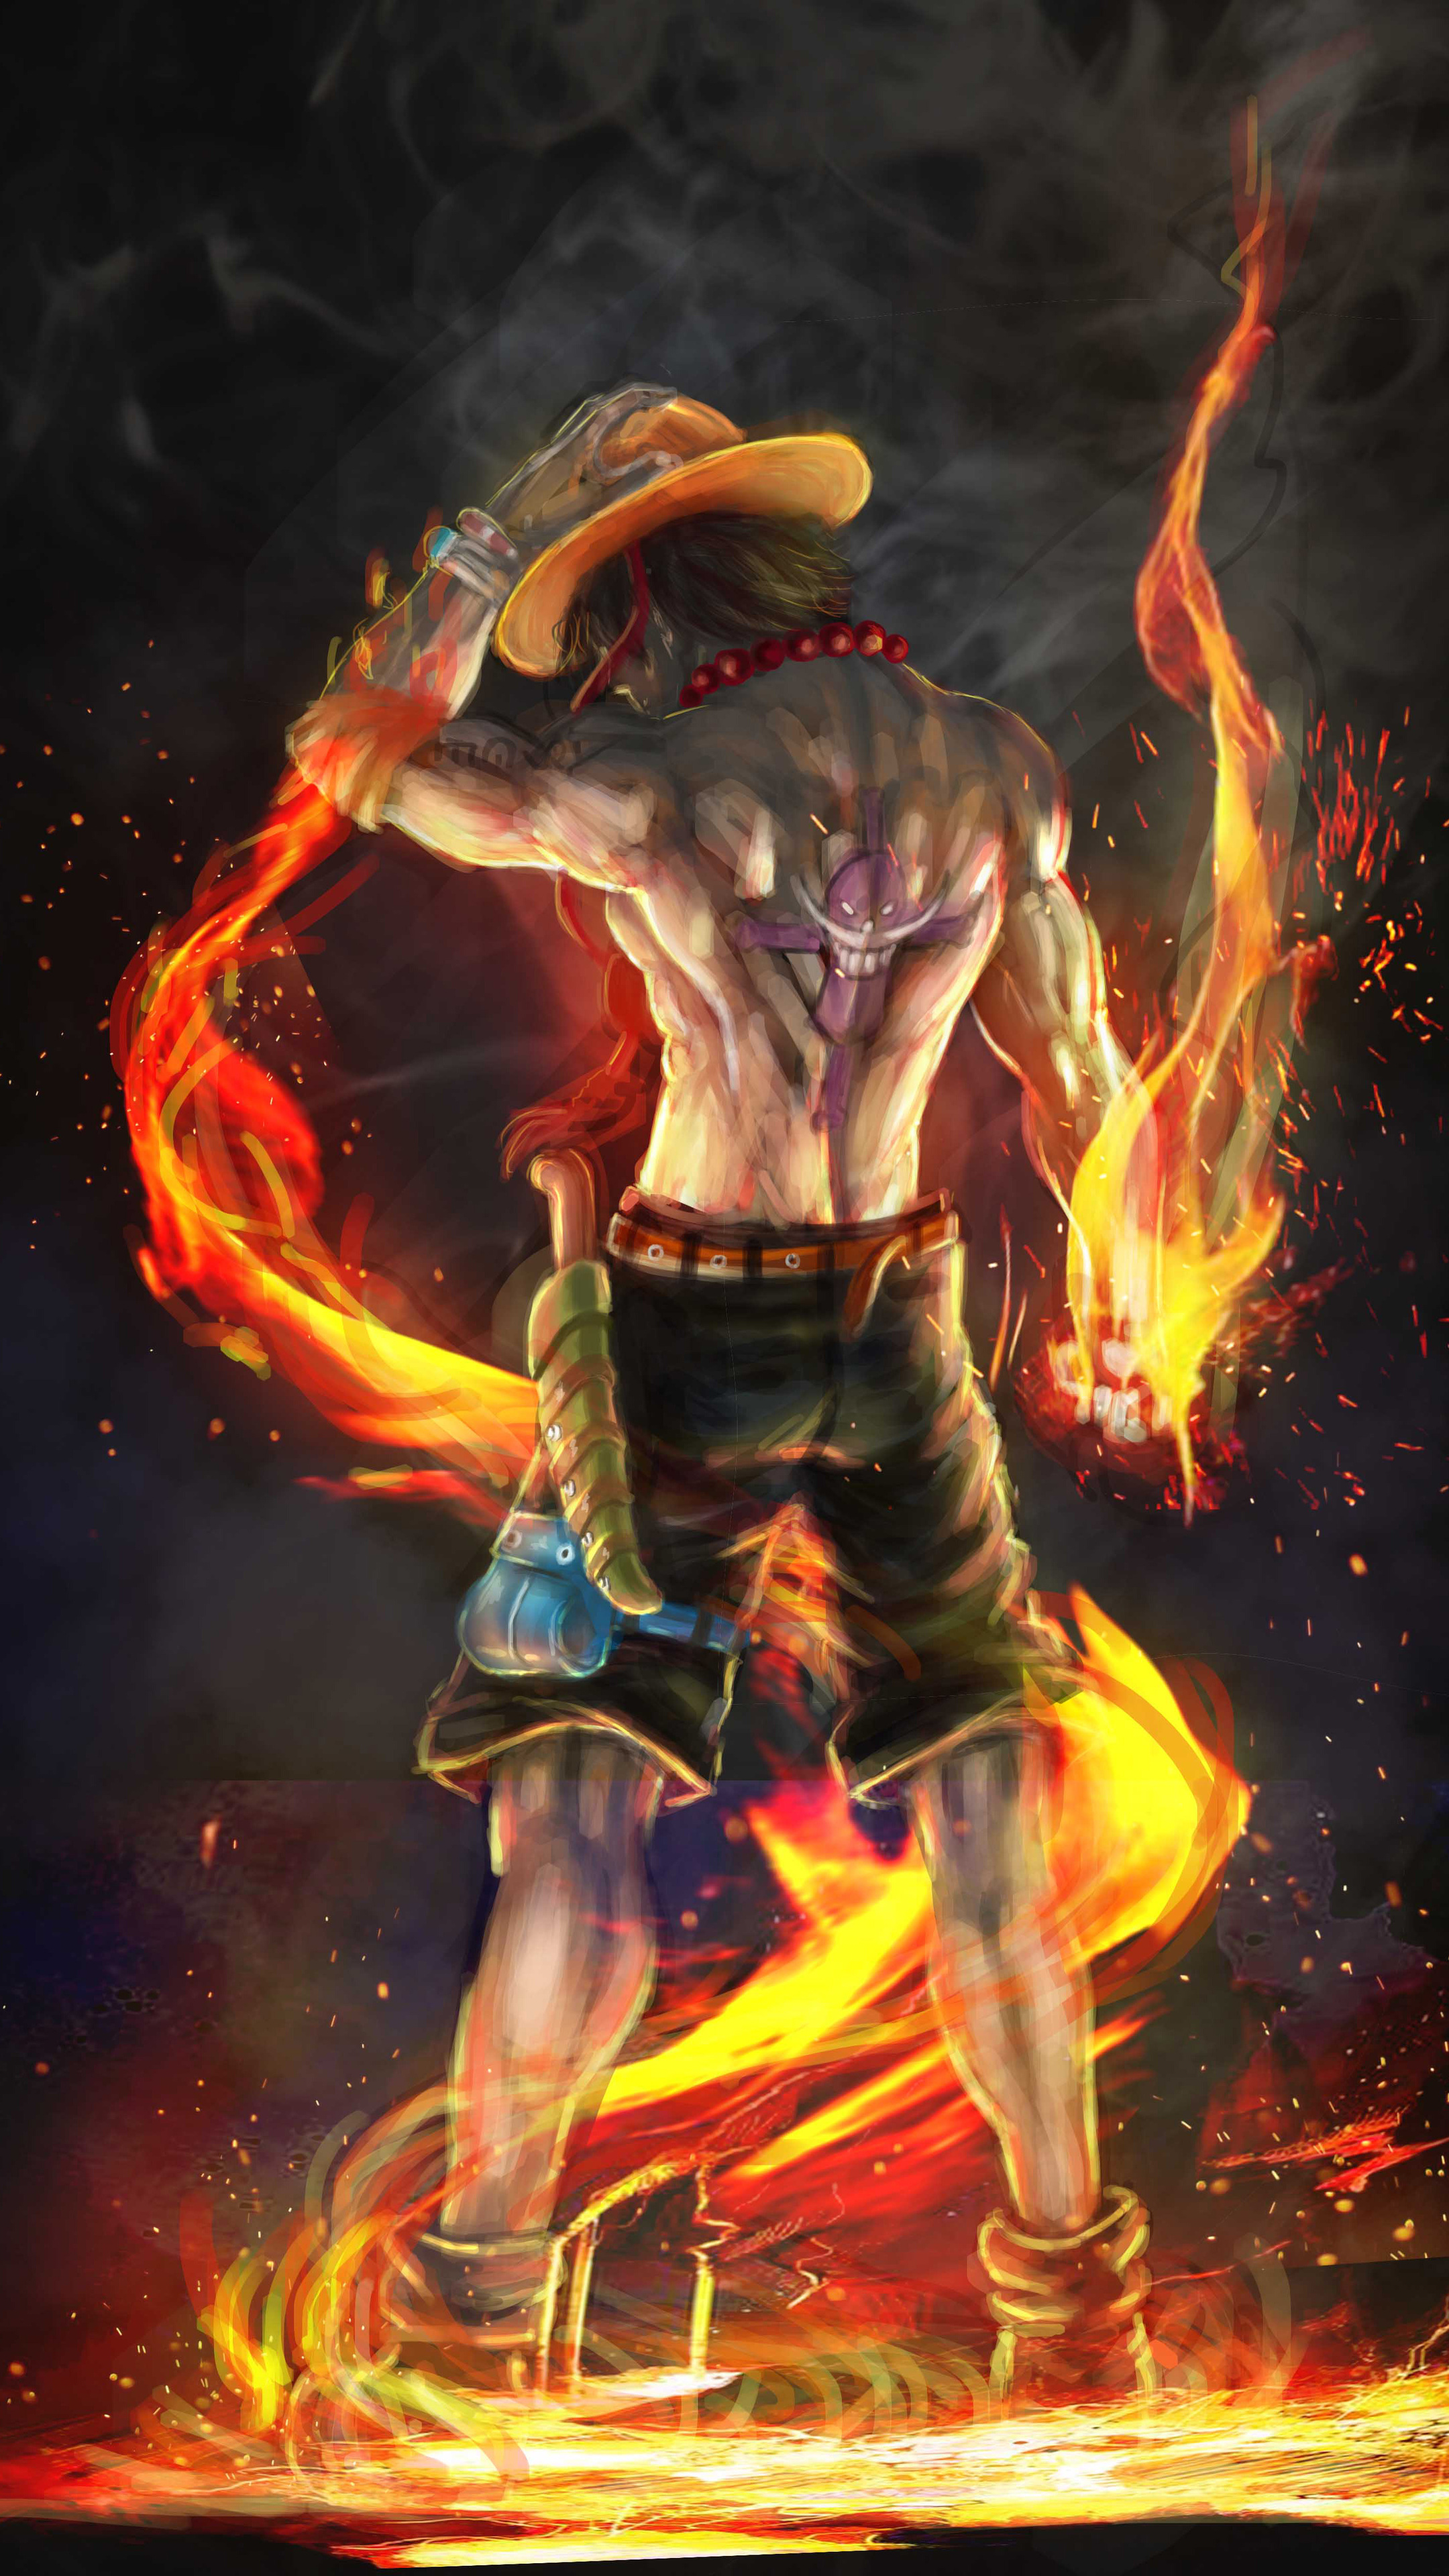 2160x3840 Fire Fist Ace 4k Artwork Sony Xperia X Xz Z5 Premium Hd 4k